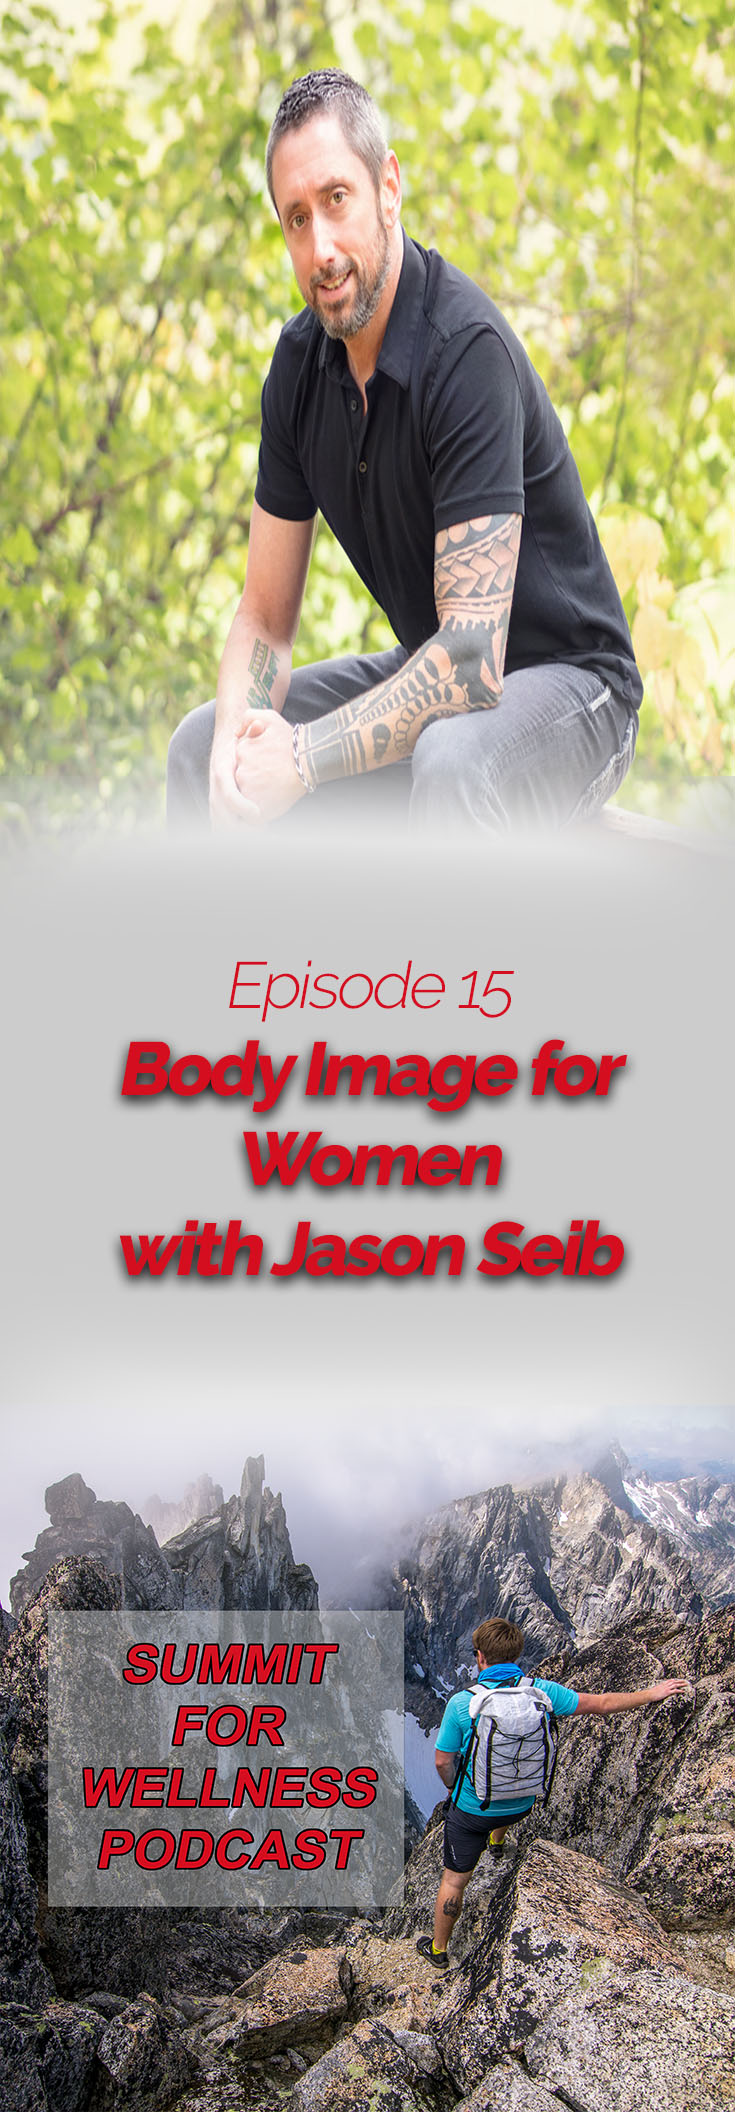 Join Jason Seib as he discusses some cultural body image issues he has seen with his female client base.